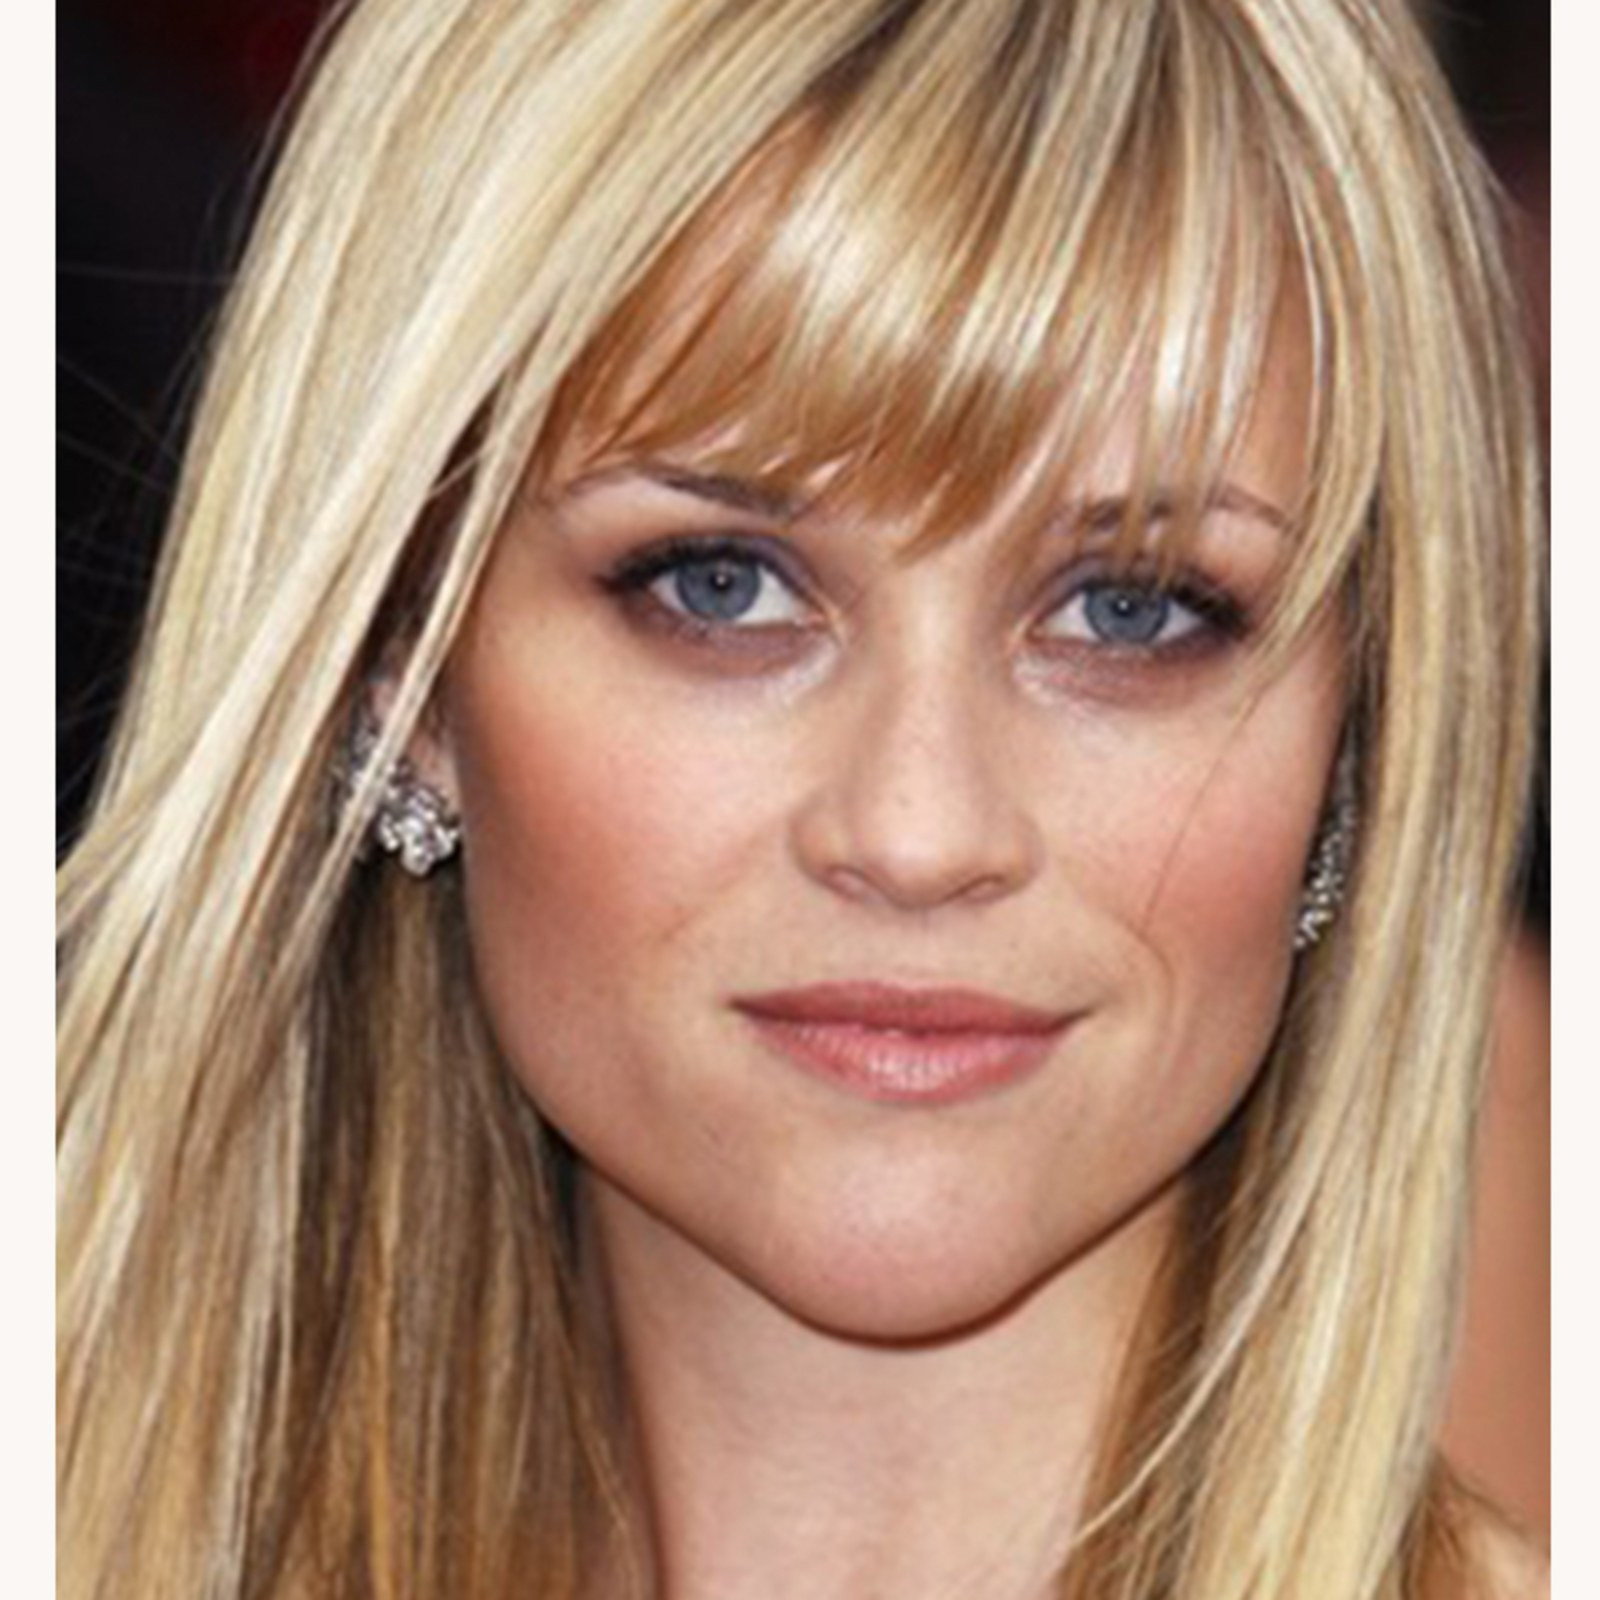 Best ideas about Haircuts For Heart Shaped Faces . Save or Pin The Top 8 Haircuts for Heart Shaped Faces Allure Now.